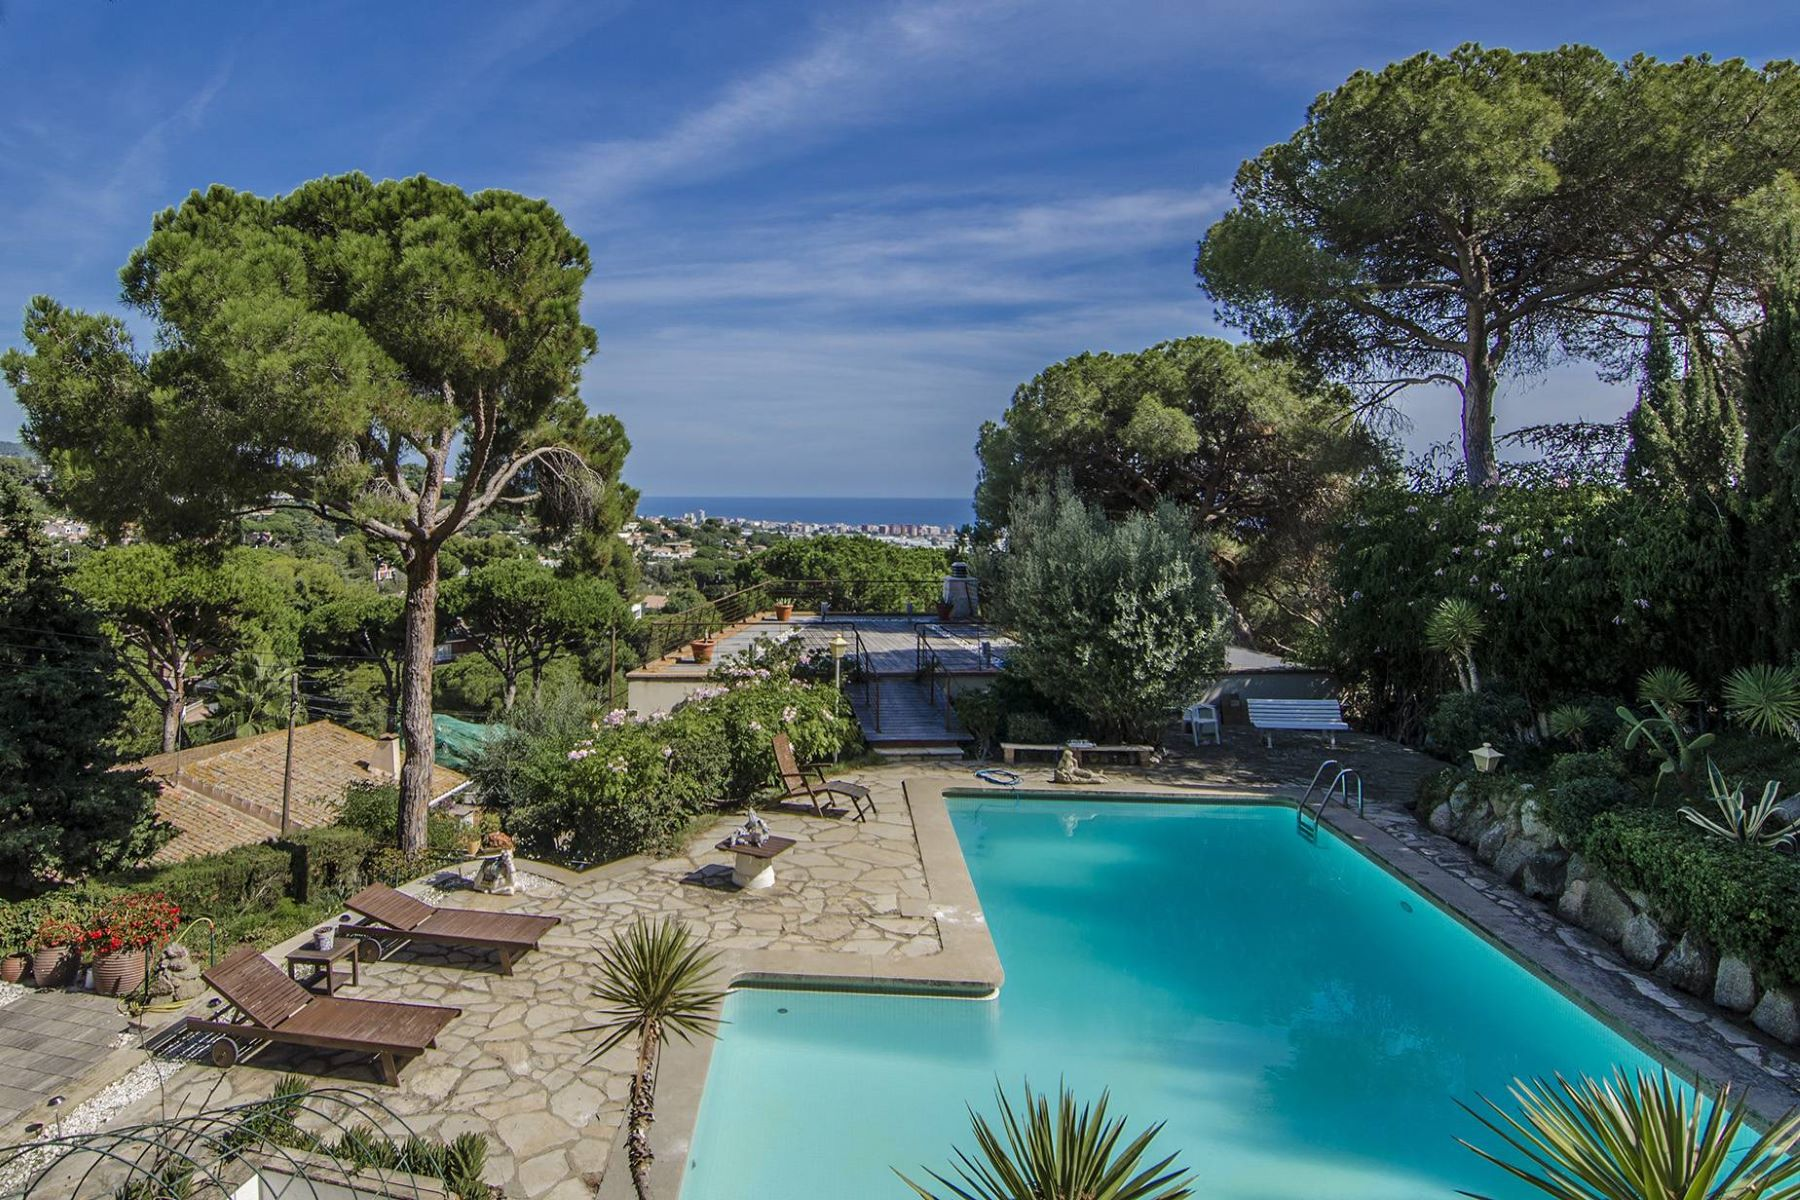 Single Family Home for Sale at Classic house with amazing views over the Mediterranean Vilassar De Mar, Barcelona, 08340 Spain